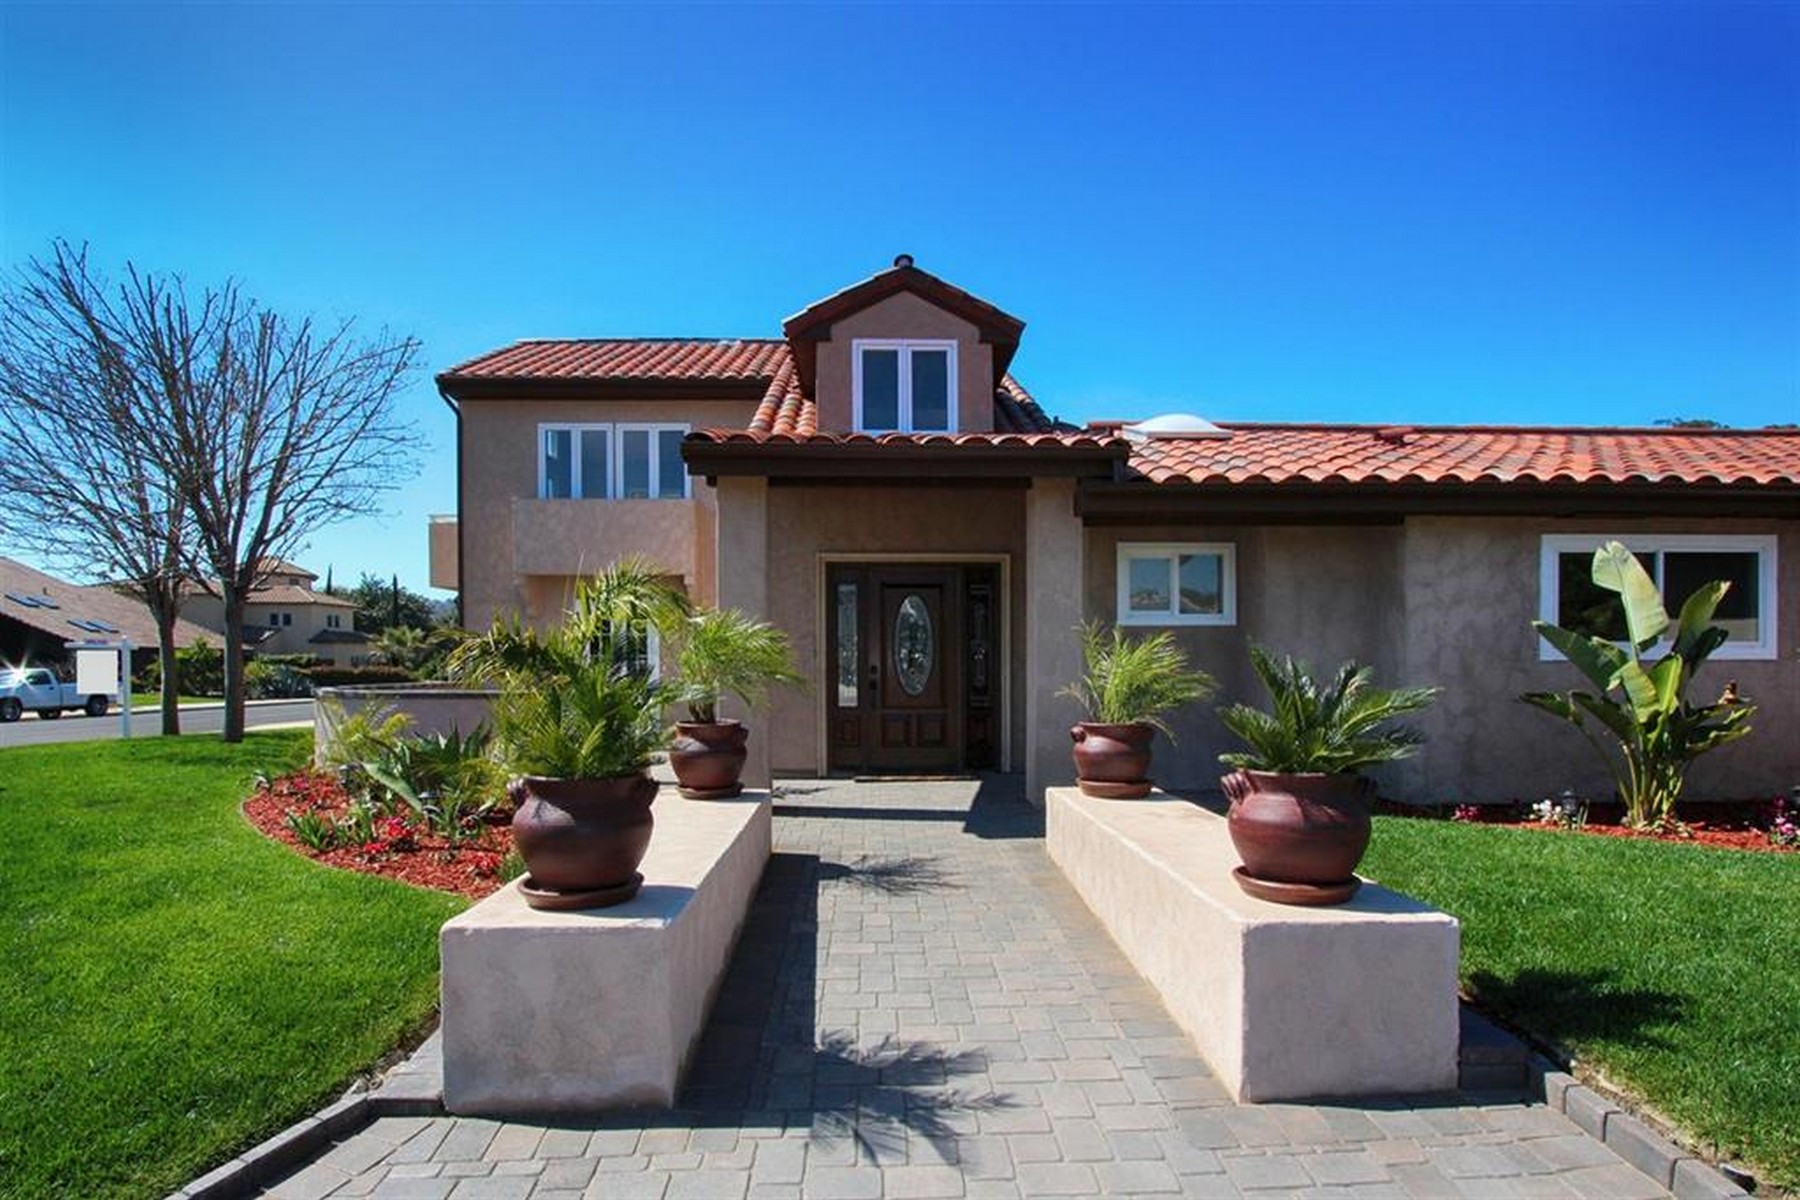 Single Family Home for Sale at Whispering Palms 3934 Via Valle Verde Rancho Santa Fe, California 92091 United States